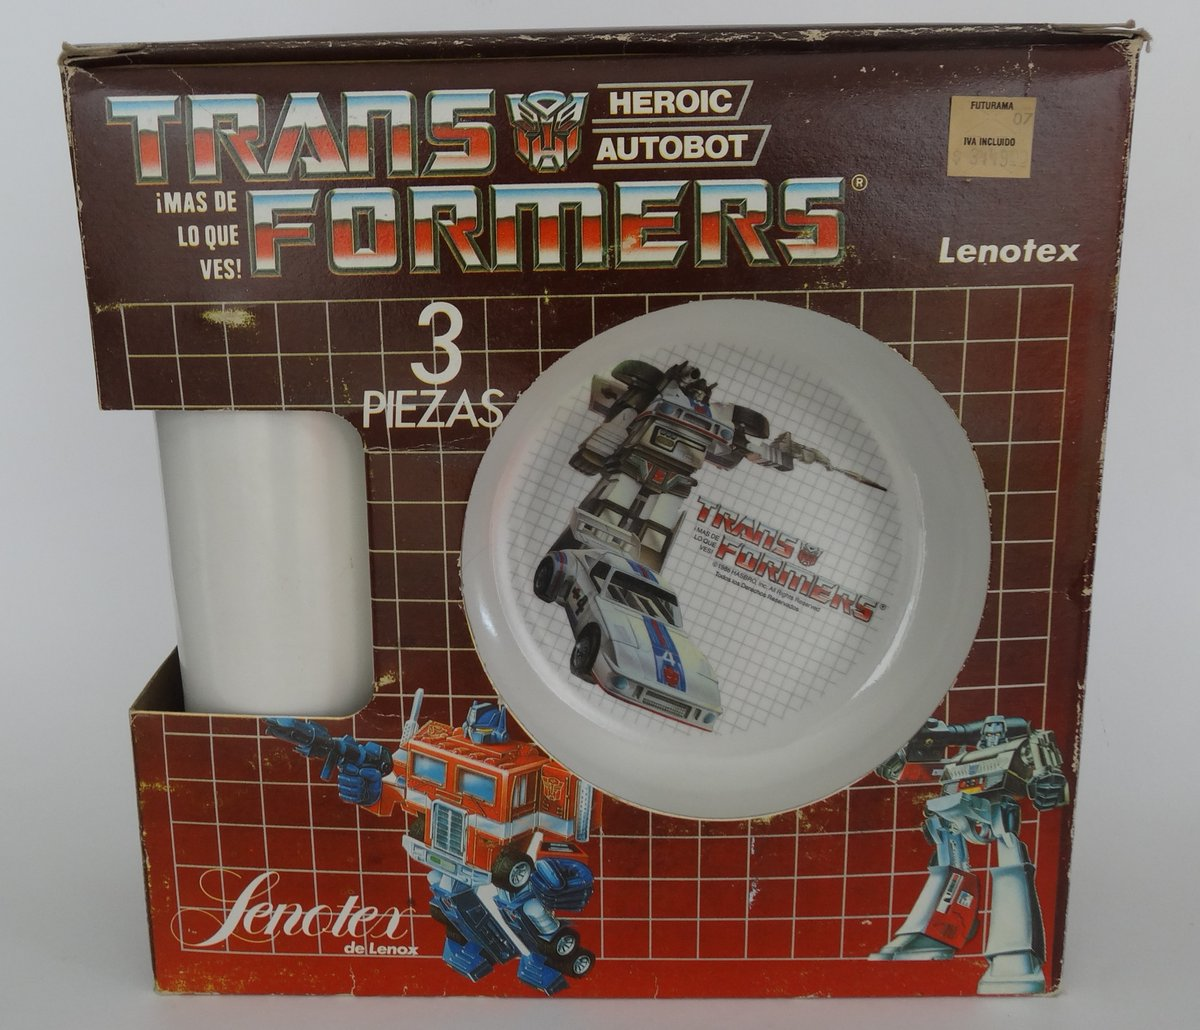 Three piece meal set, Megatron & Prime plate, Jazz bowl with unmarked cup/tumbler made in Mexico under Hasbro Licence by Lenotex, 1986. #transformers #g1transformers